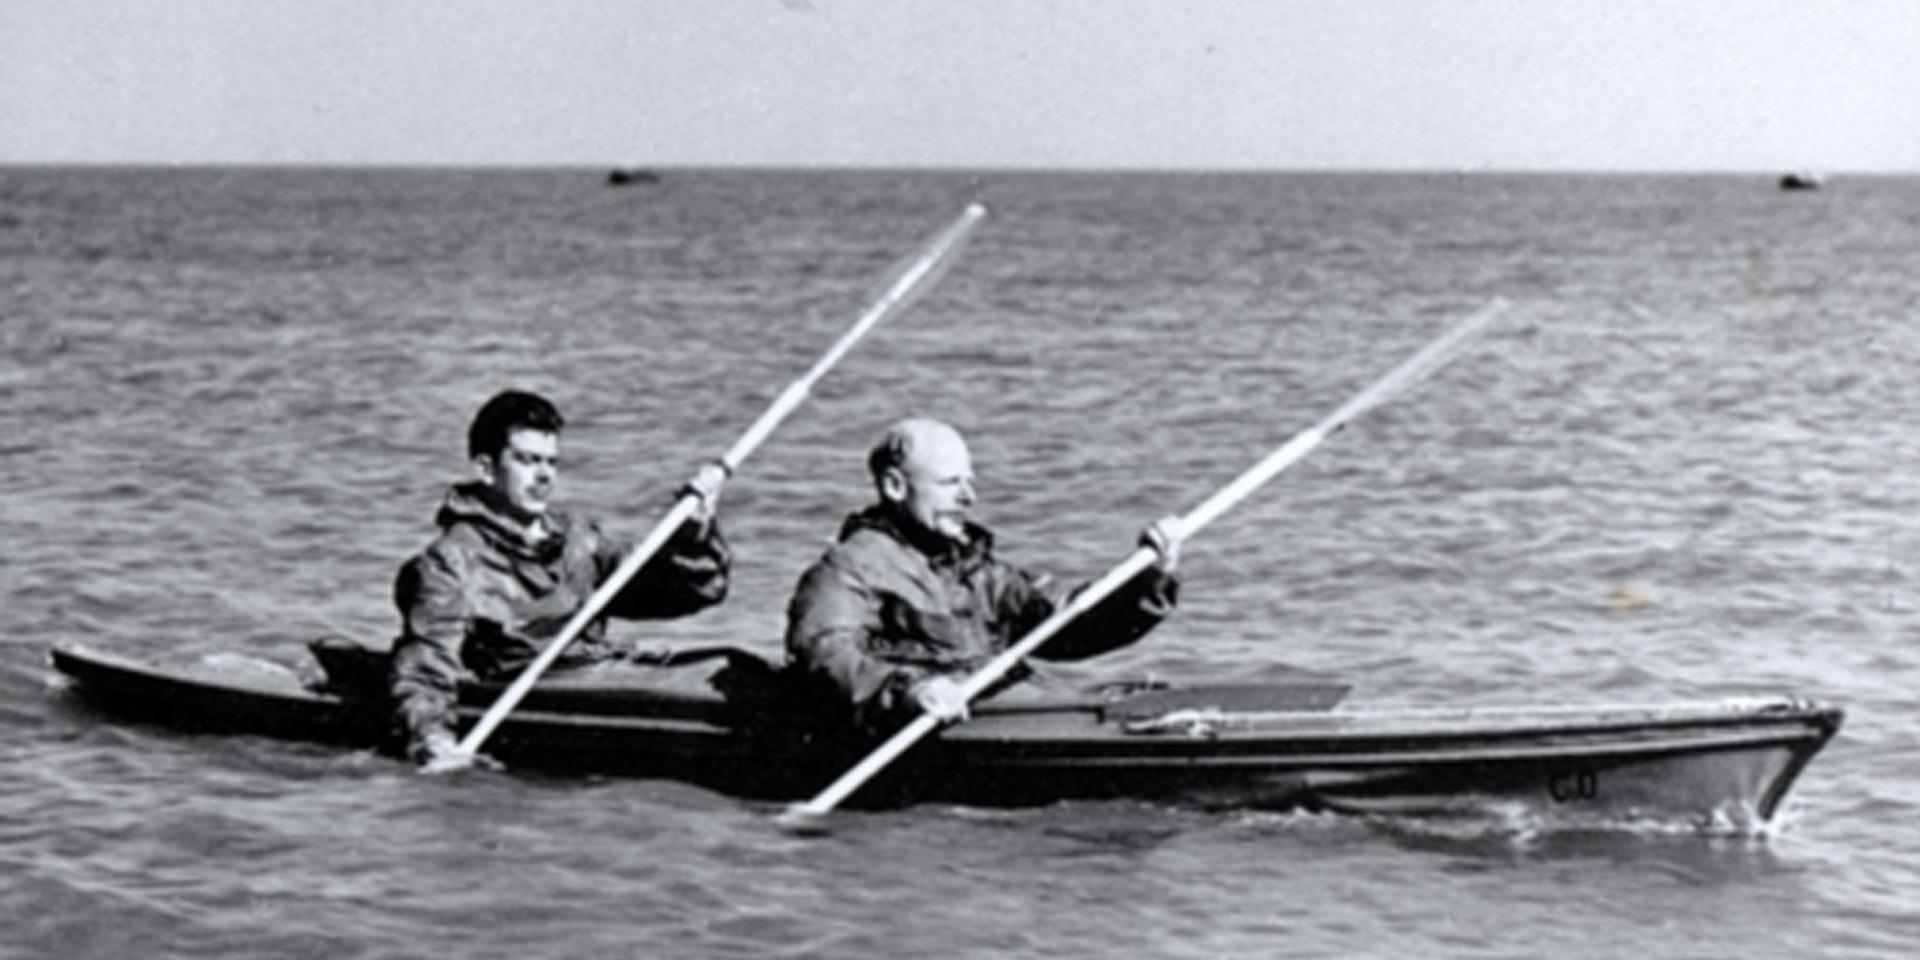 Major Herbert 'Blondie' Hasler and a colleague paddling a canoe, c1942